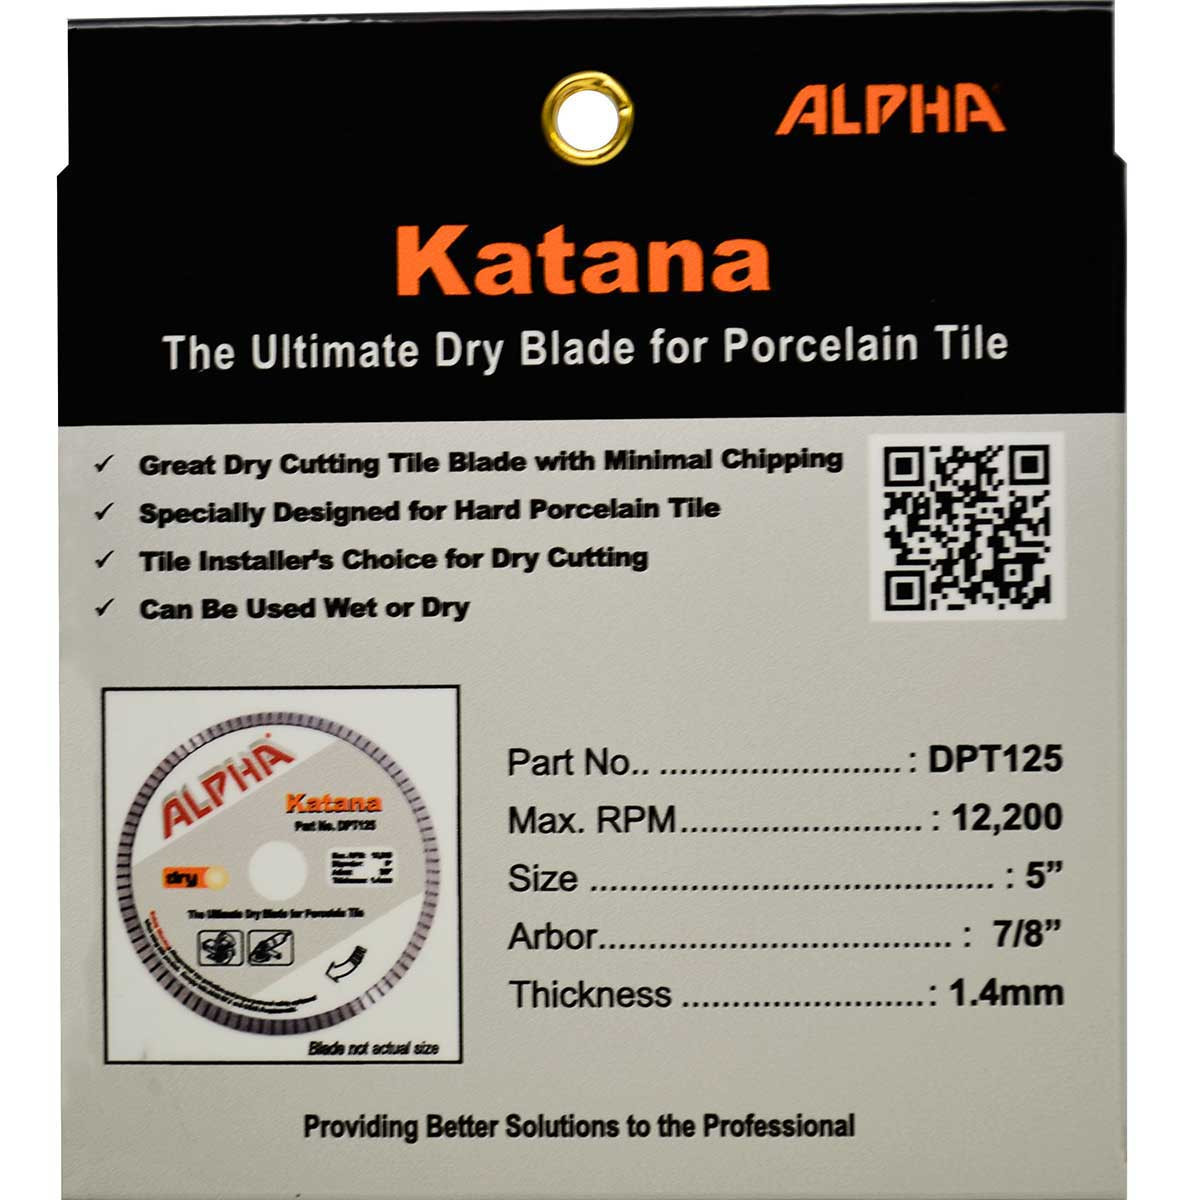 alpha 5in katana dry tile blade package